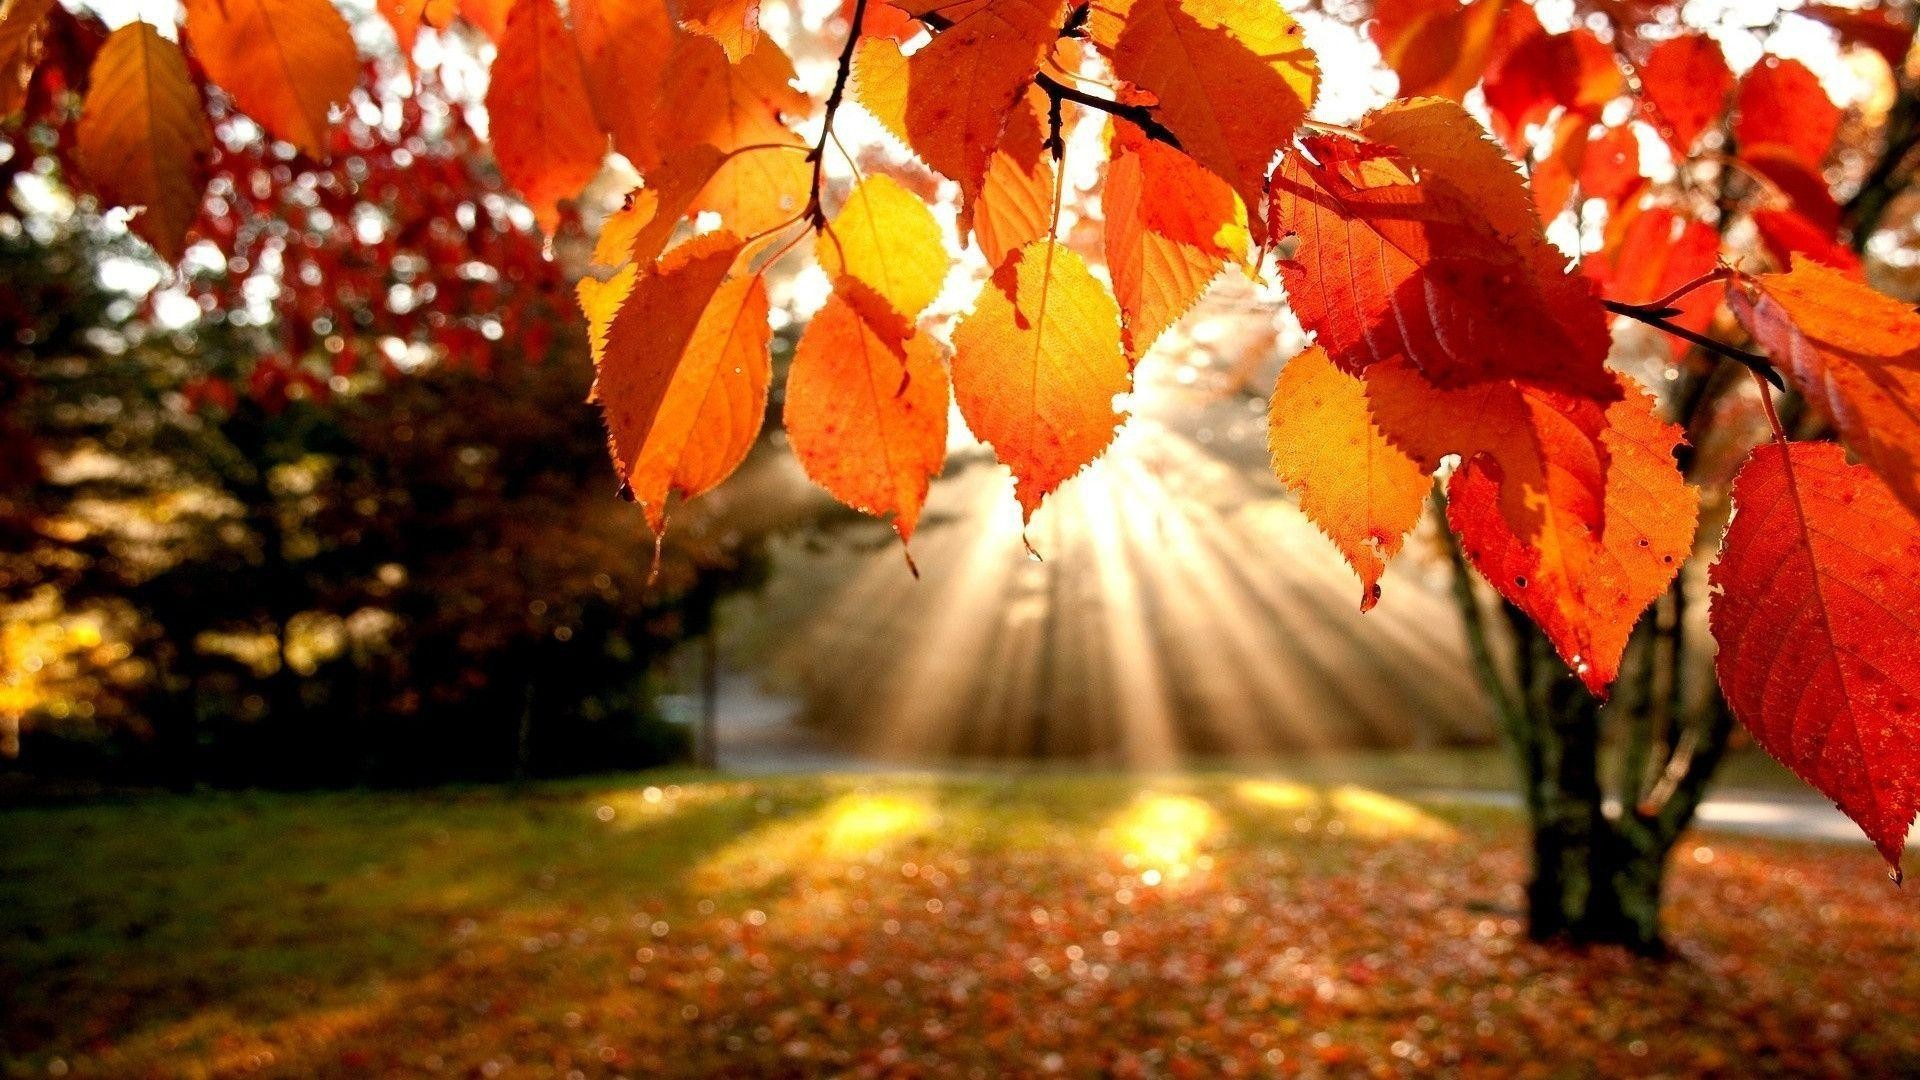 Anime Fall Wallpaper Pictures 5 HD Wallpapers   aduphoto.